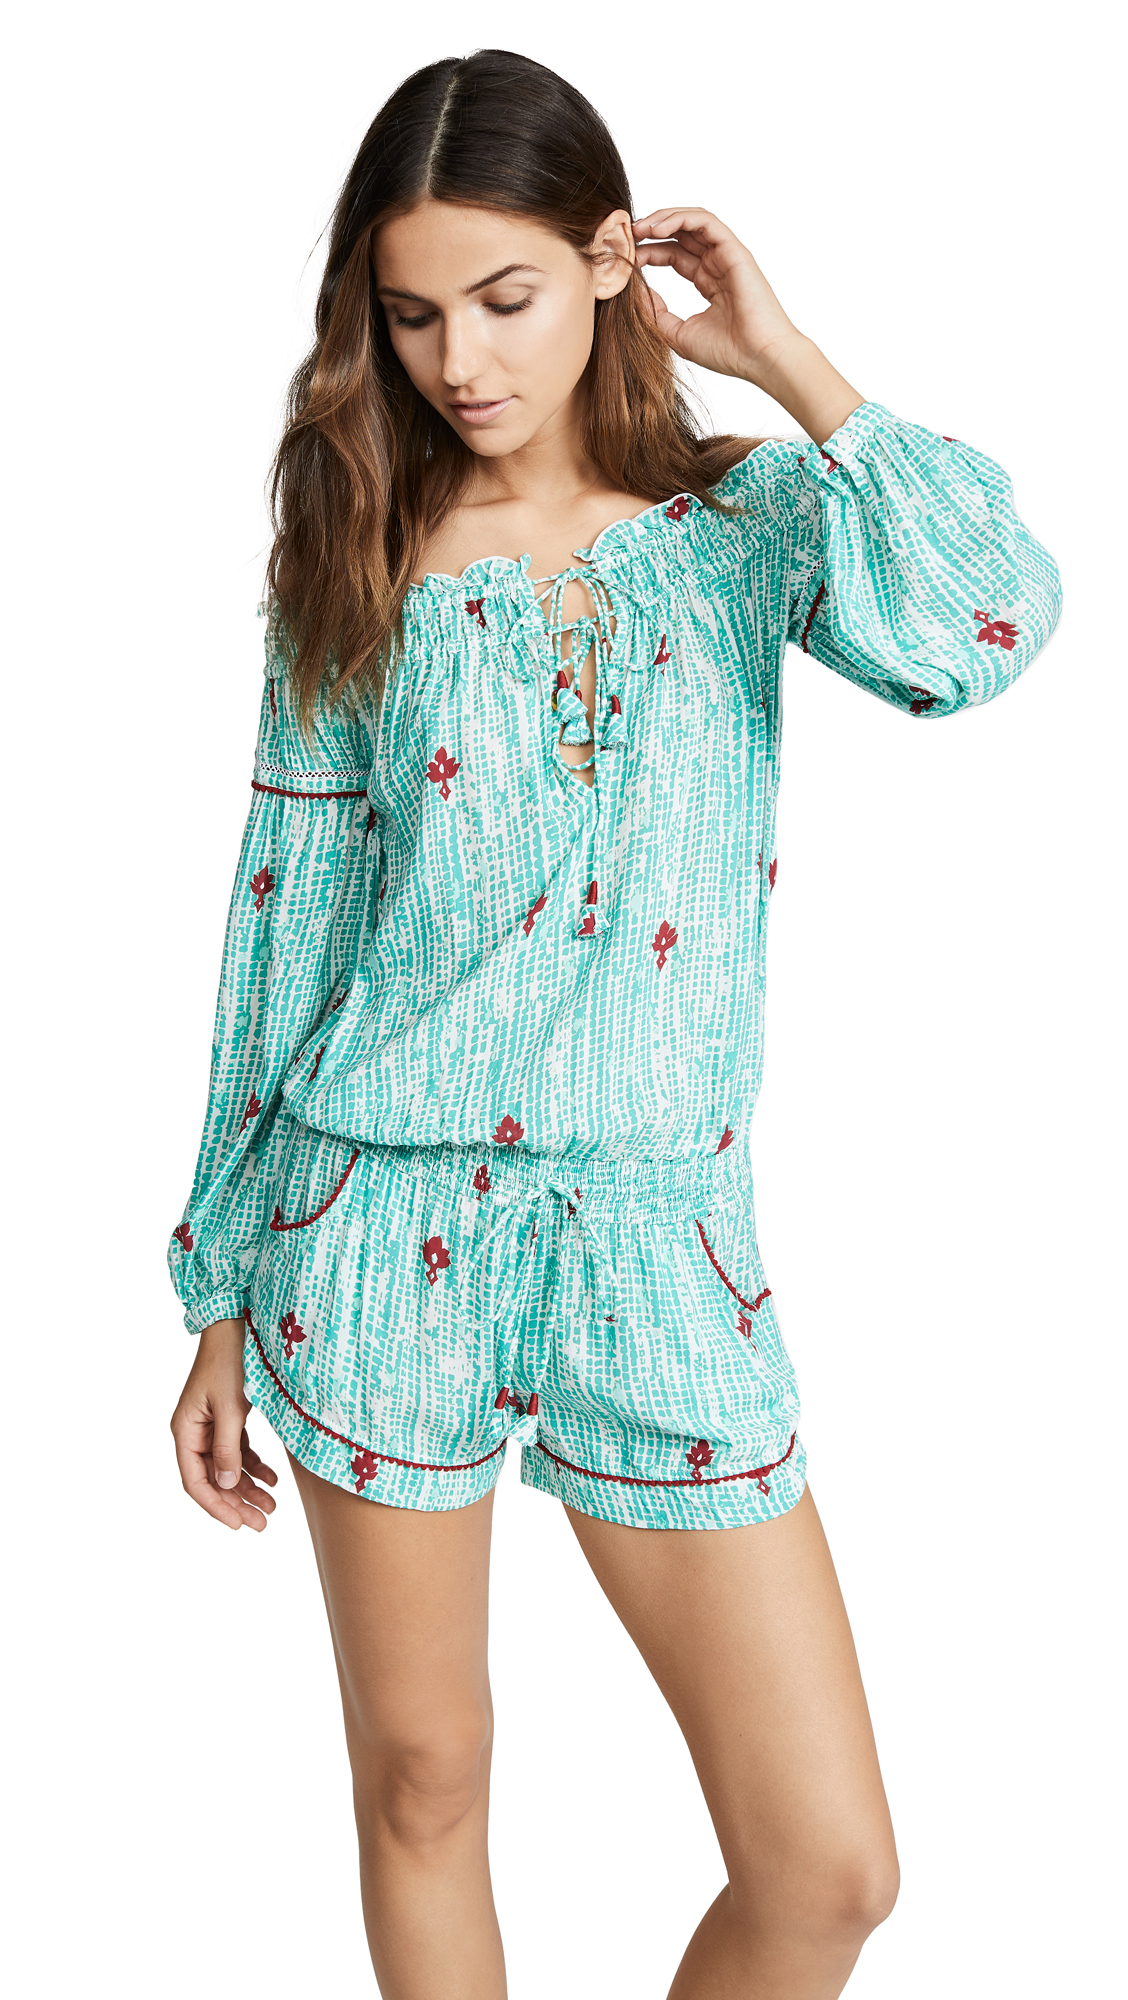 POUPETTE ST BARTH Poupette T Barth Clara Romper Aqua/Red in Aqua Fanciful